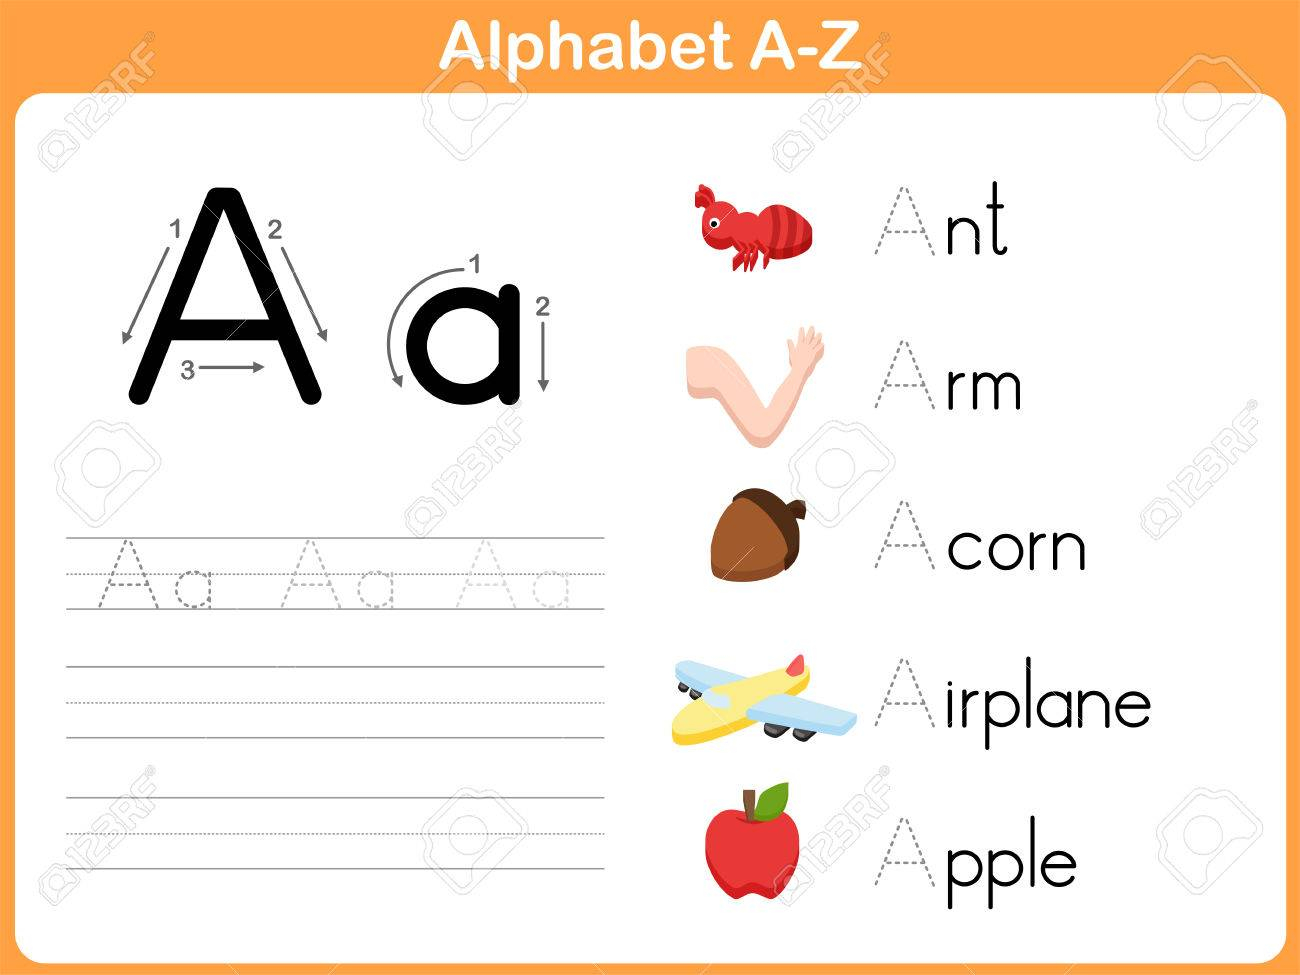 Alphabet Tracing Worksheet: Writing A-Z regarding Alphabet Writing Worksheets A-Z